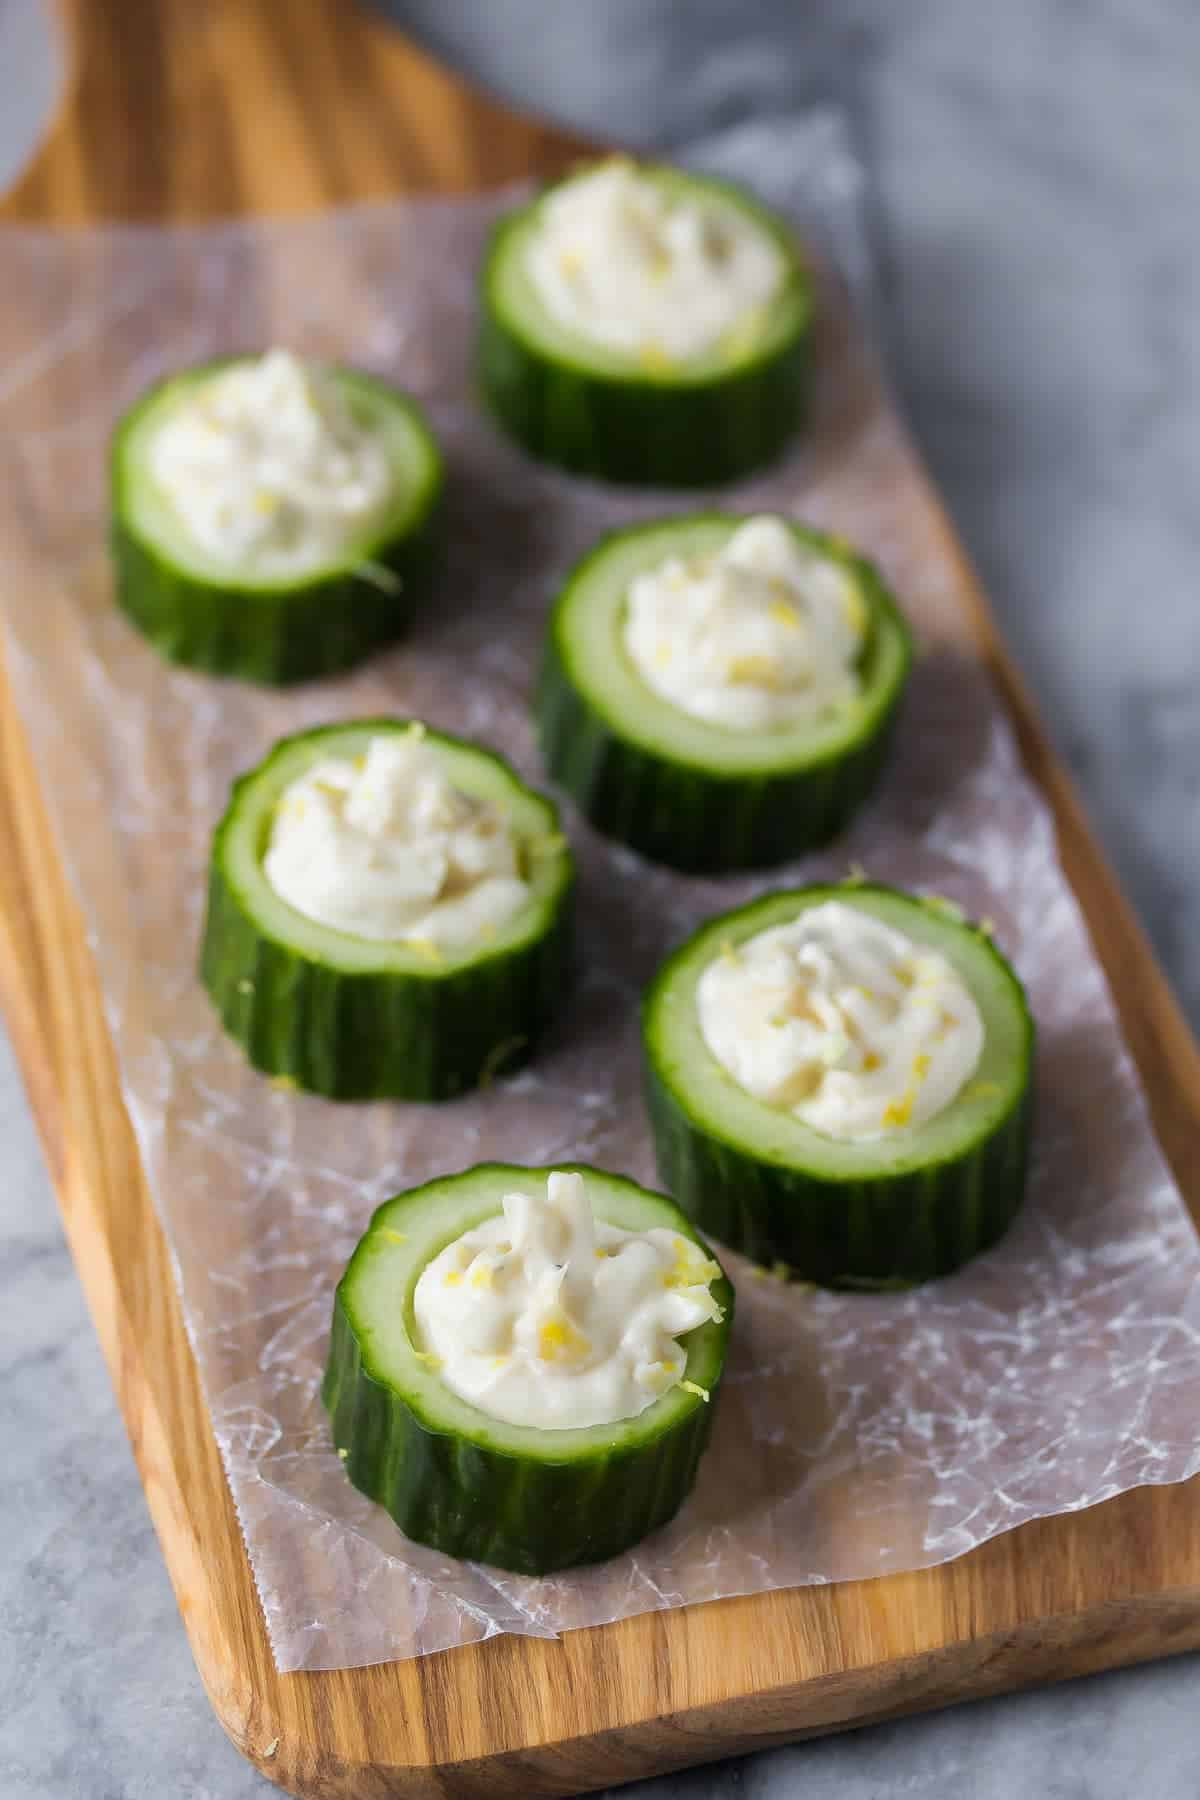 3-healthy-holiday-appetizer-recipe-ideas-4-ingredients-5